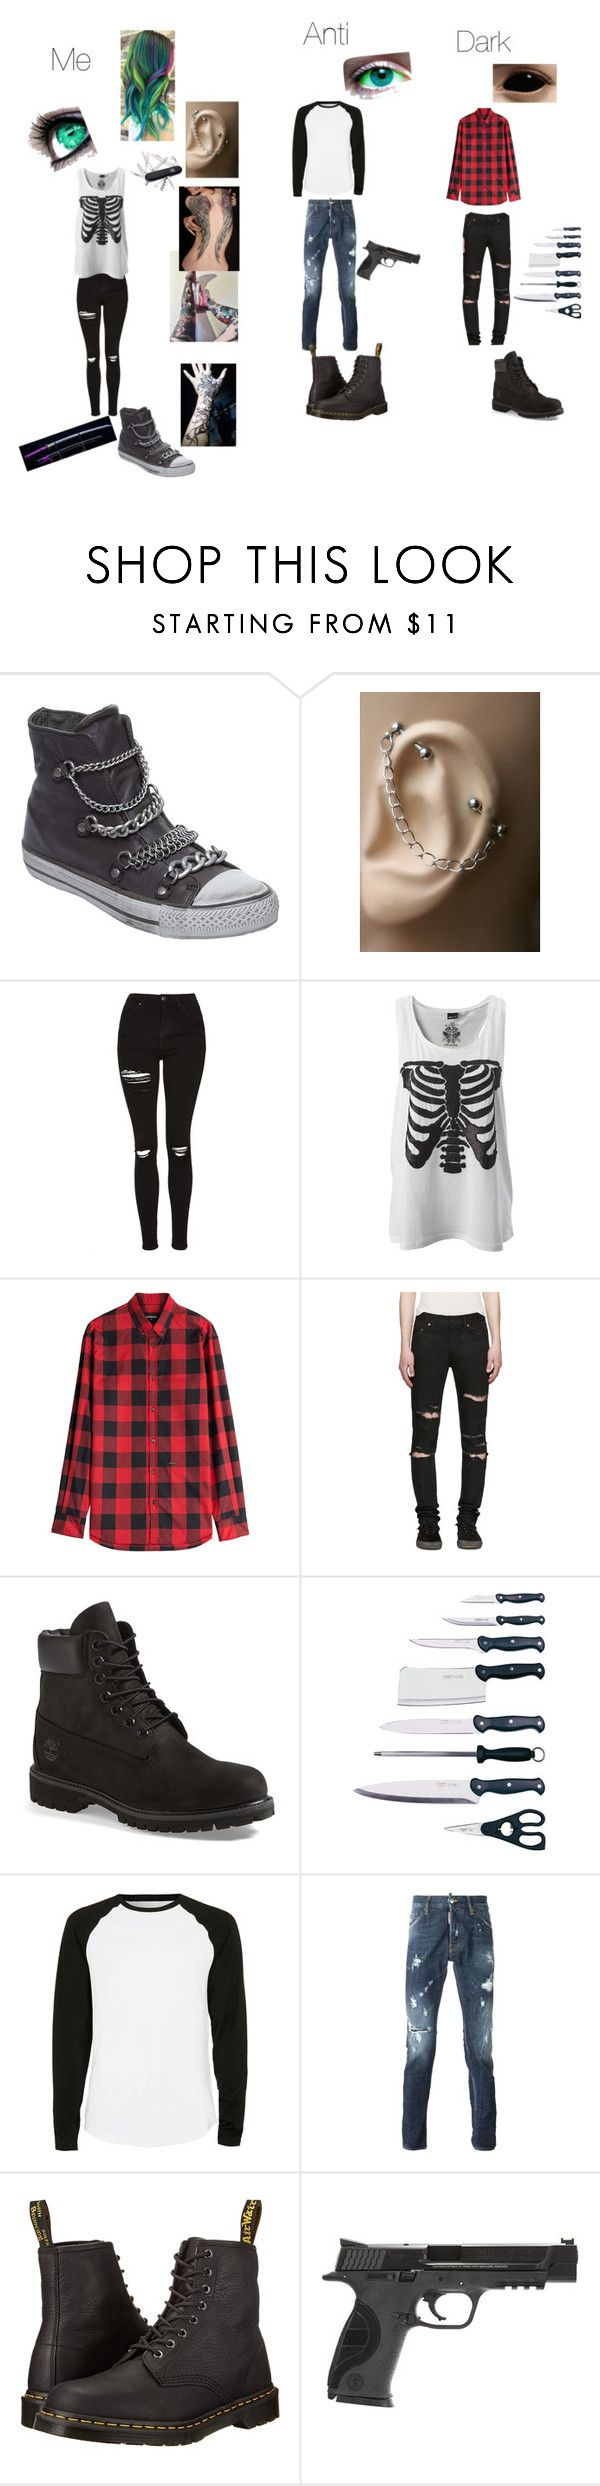 """""""Antisepticeye, darkiplier and me"""" by kitanadt ❤ liked on Polyvore featuring Ash, Topshop, Victorinox Swiss Army, Dsquared2, Yves Saint Laurent, Timberland, BergHOFF, Topman, Dr. Martens and Smith & Wesson"""